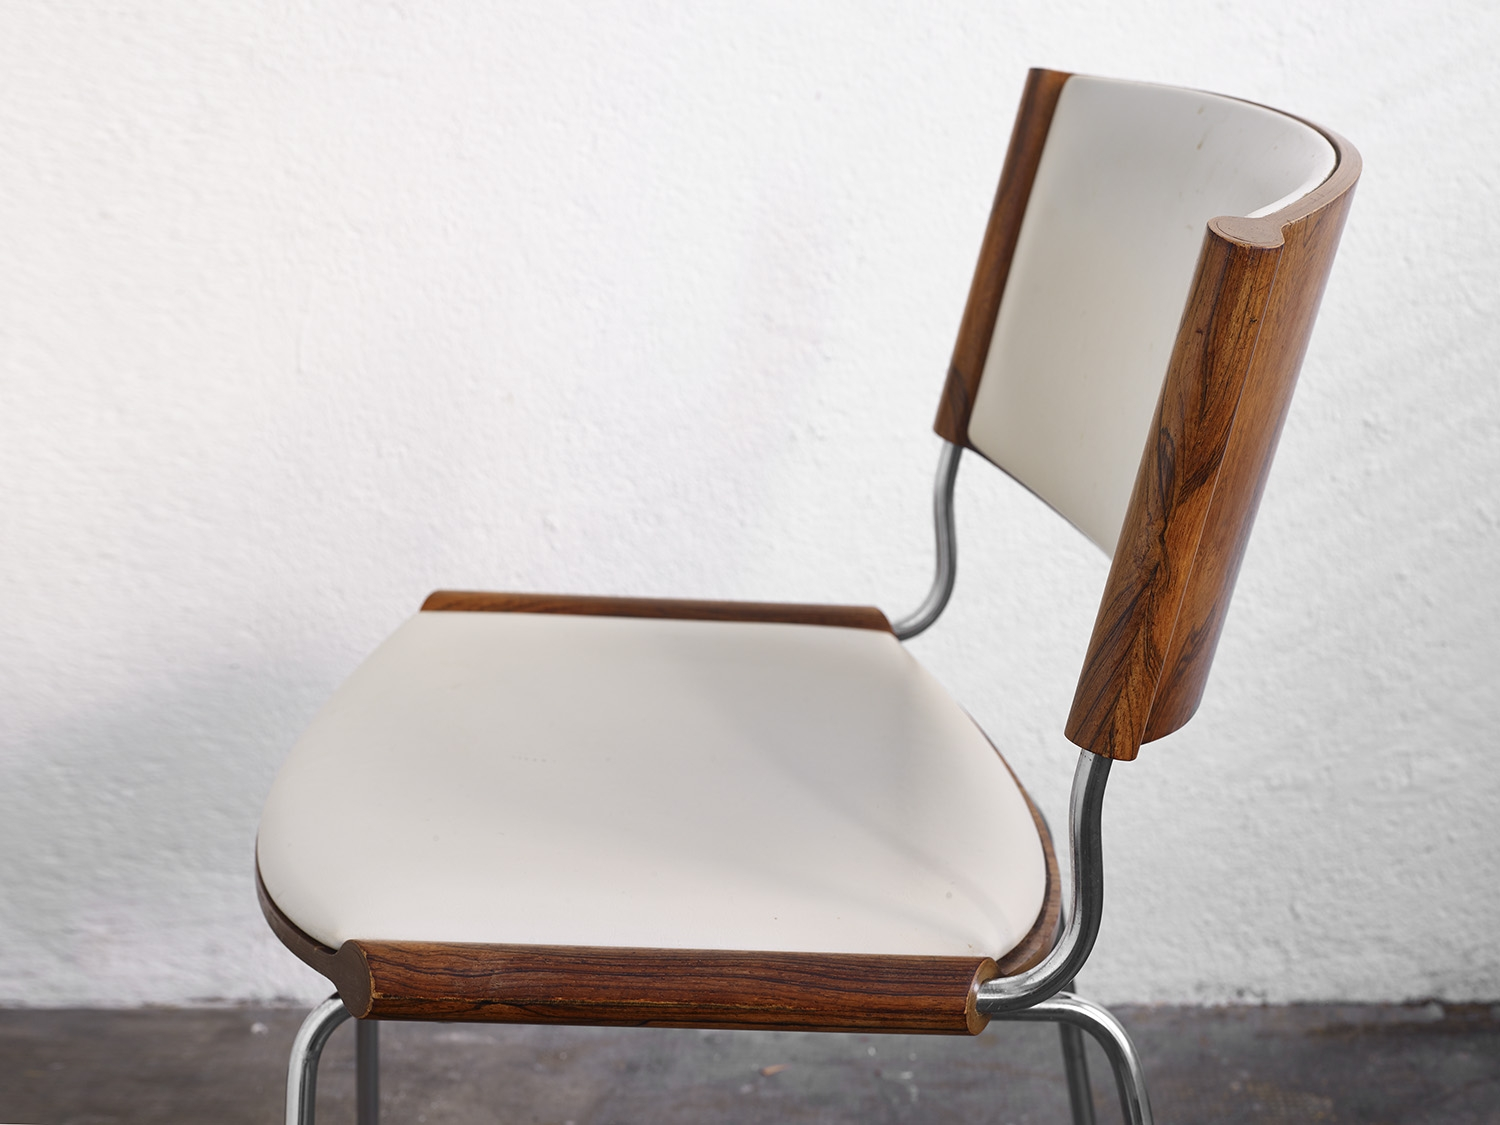 set-of-5-nd-150-dining-chairs-by-nanna-ditzel-image-08